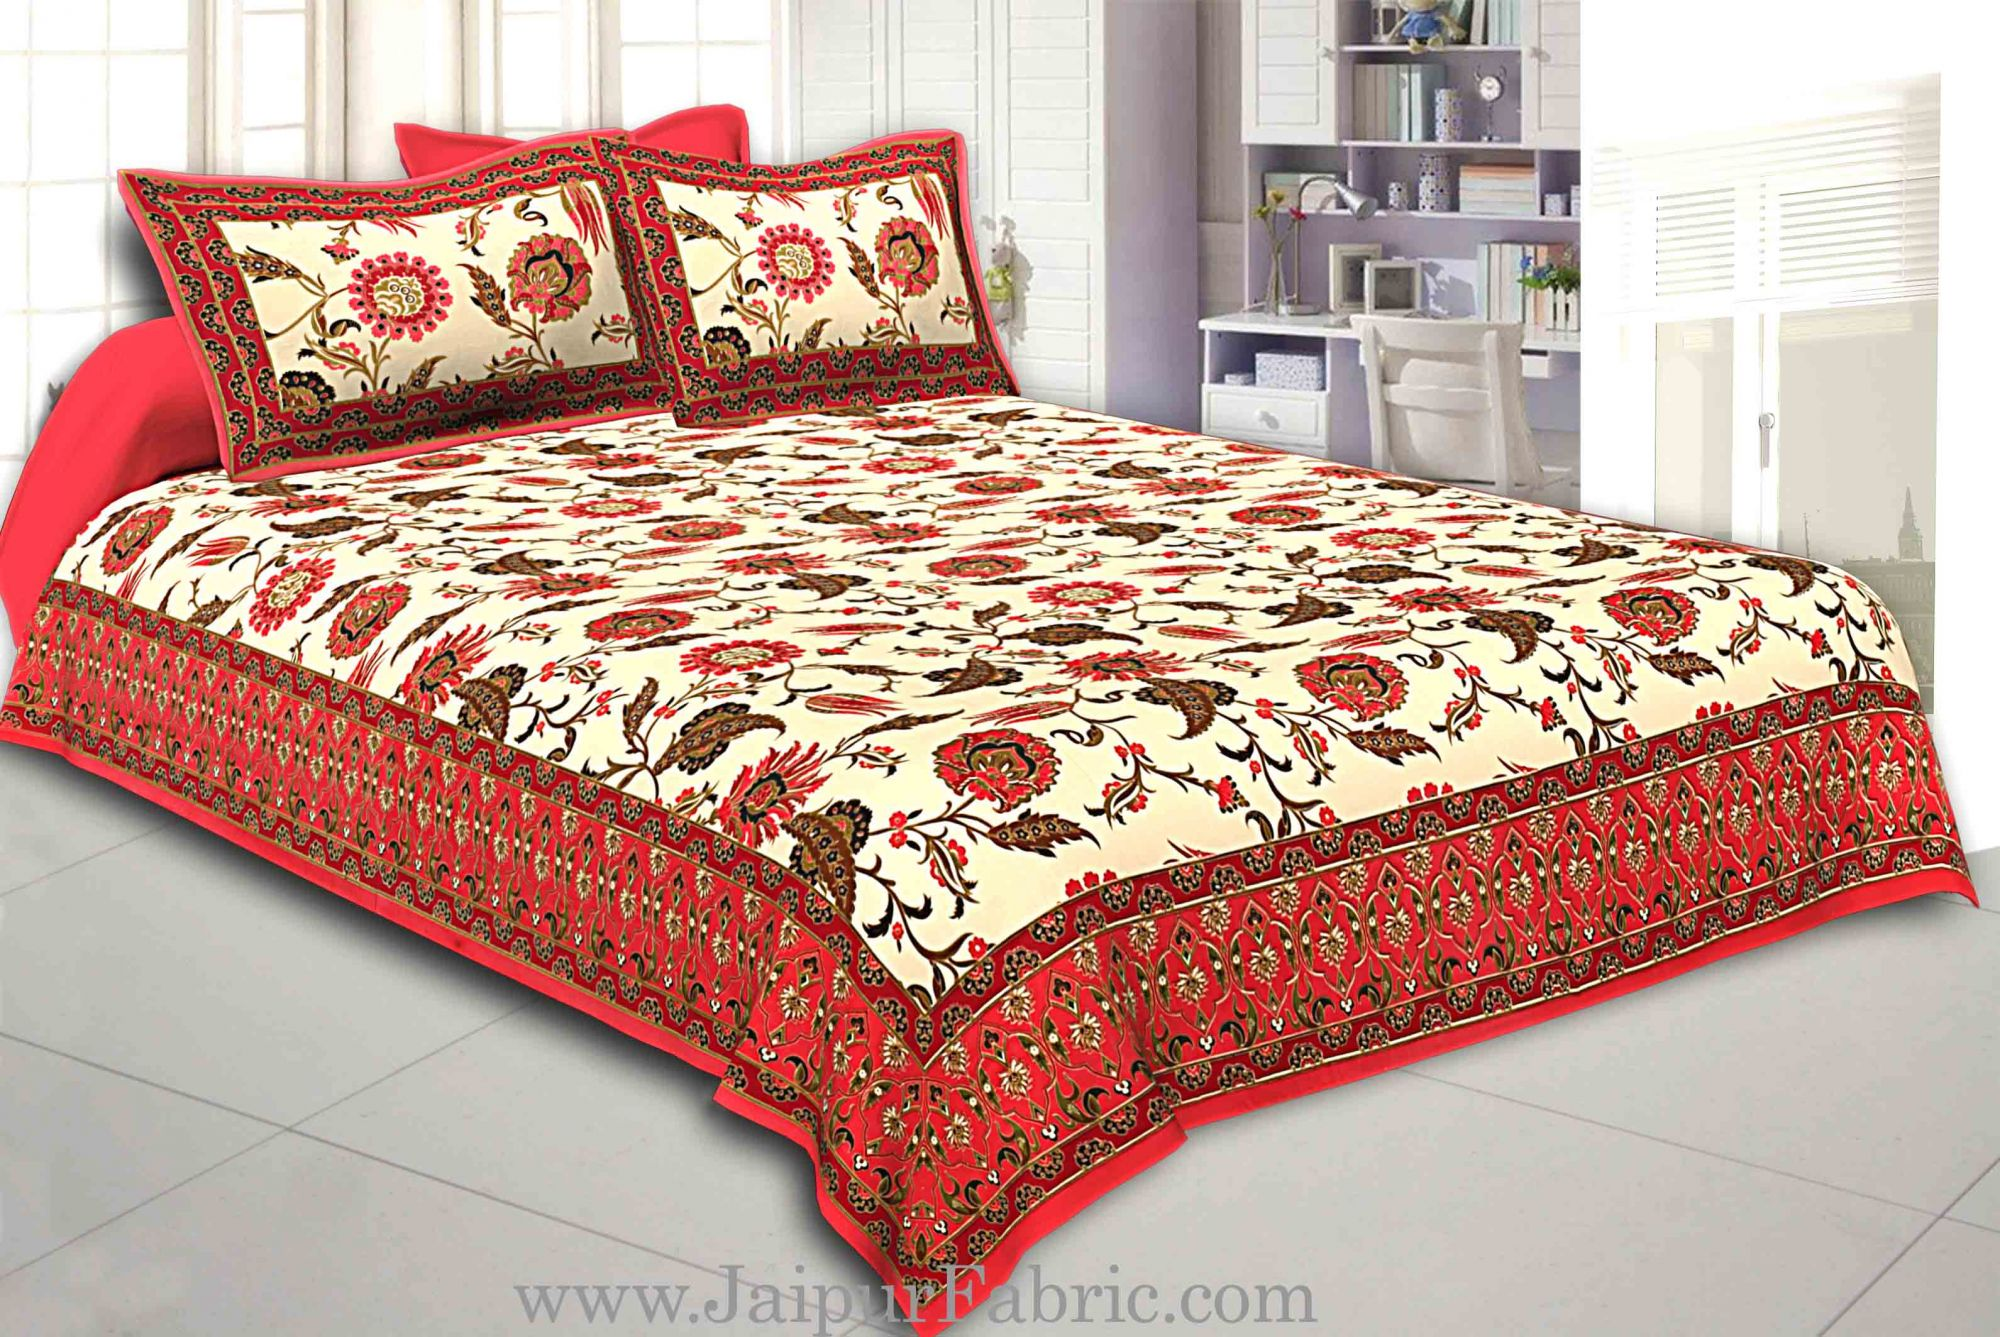 Red Border Multi Floral Golden Print Fine Cotton Double Bedsheet With Two Pillow